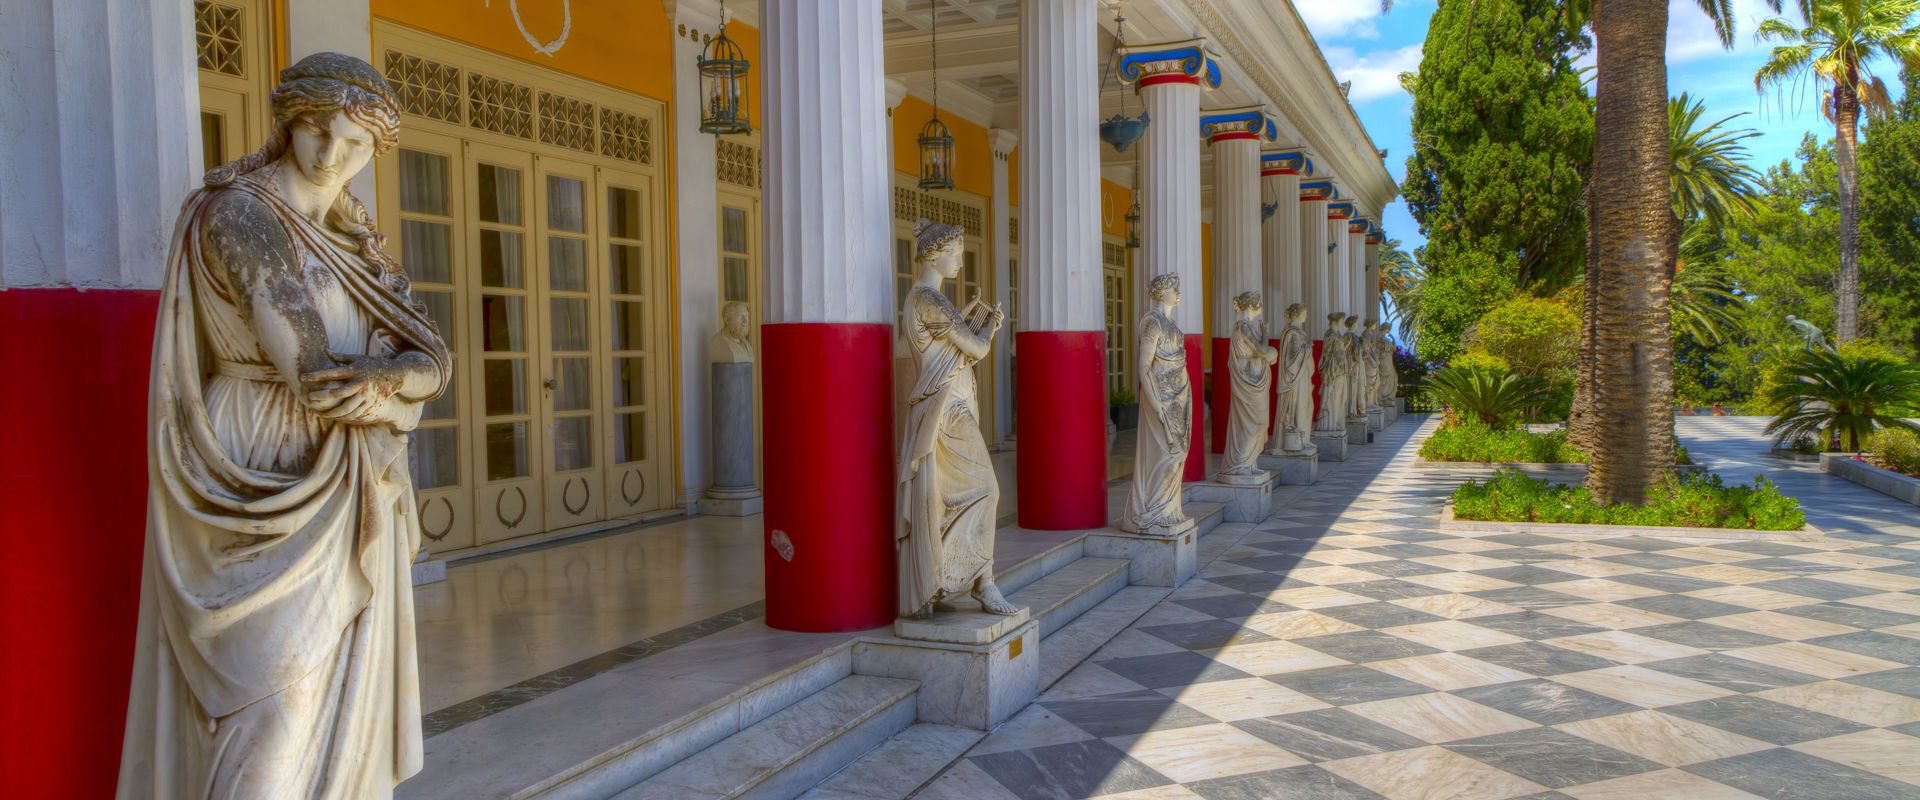 Achillion palace, Corfu island, Greece